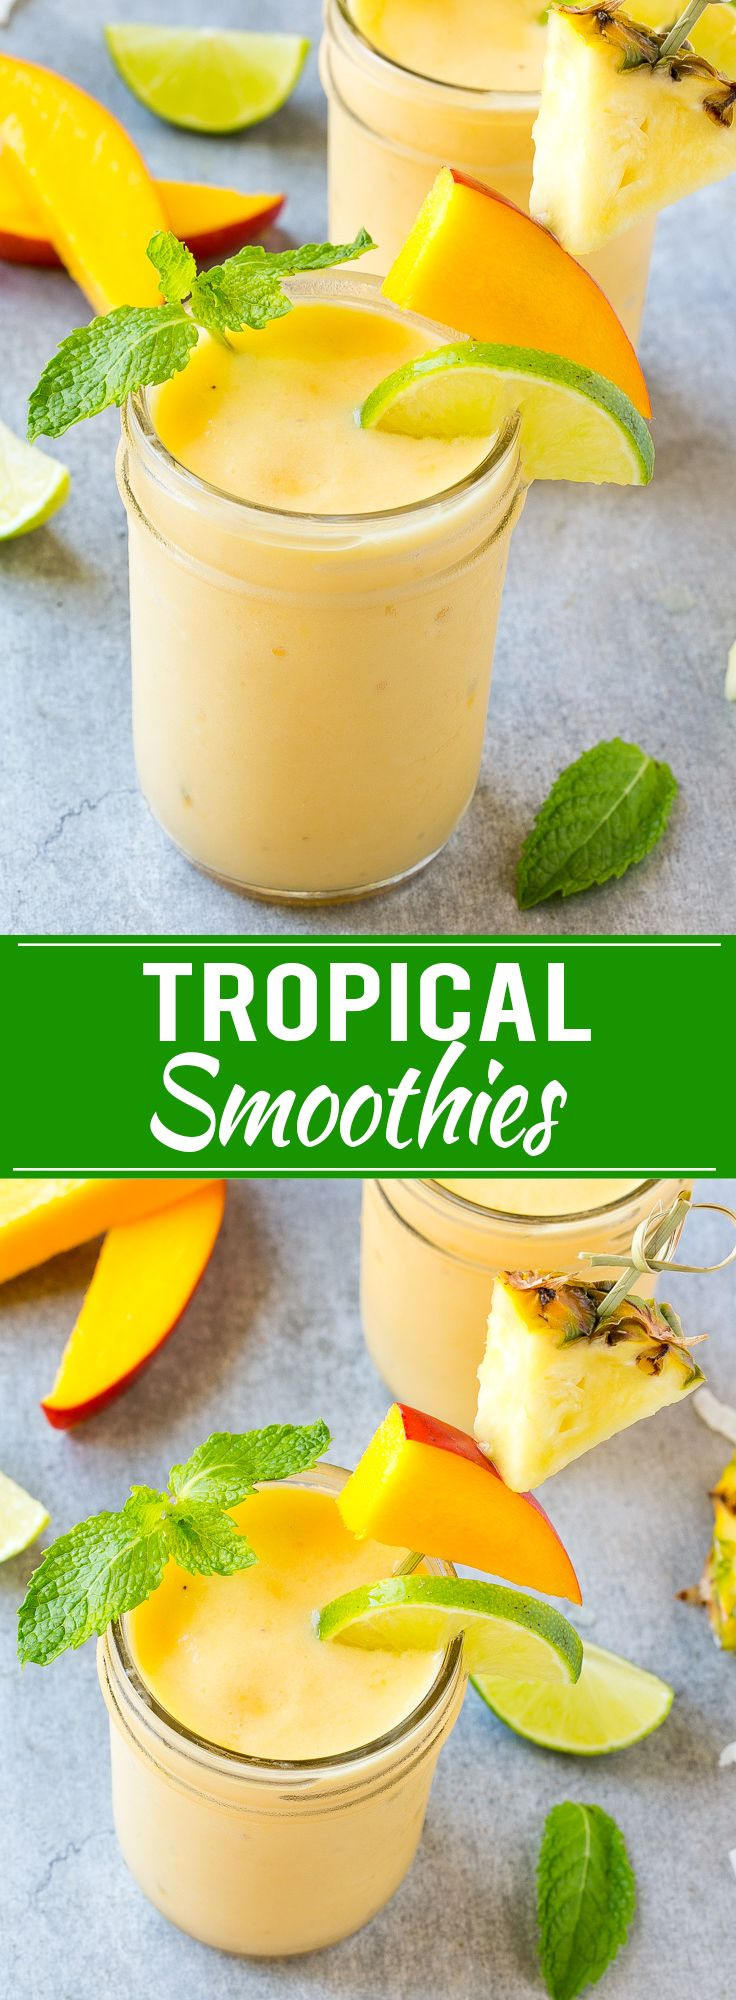 Simple Healthy Smoothie Recipes  Best 25 Tropical smoothie recipes ideas on Pinterest